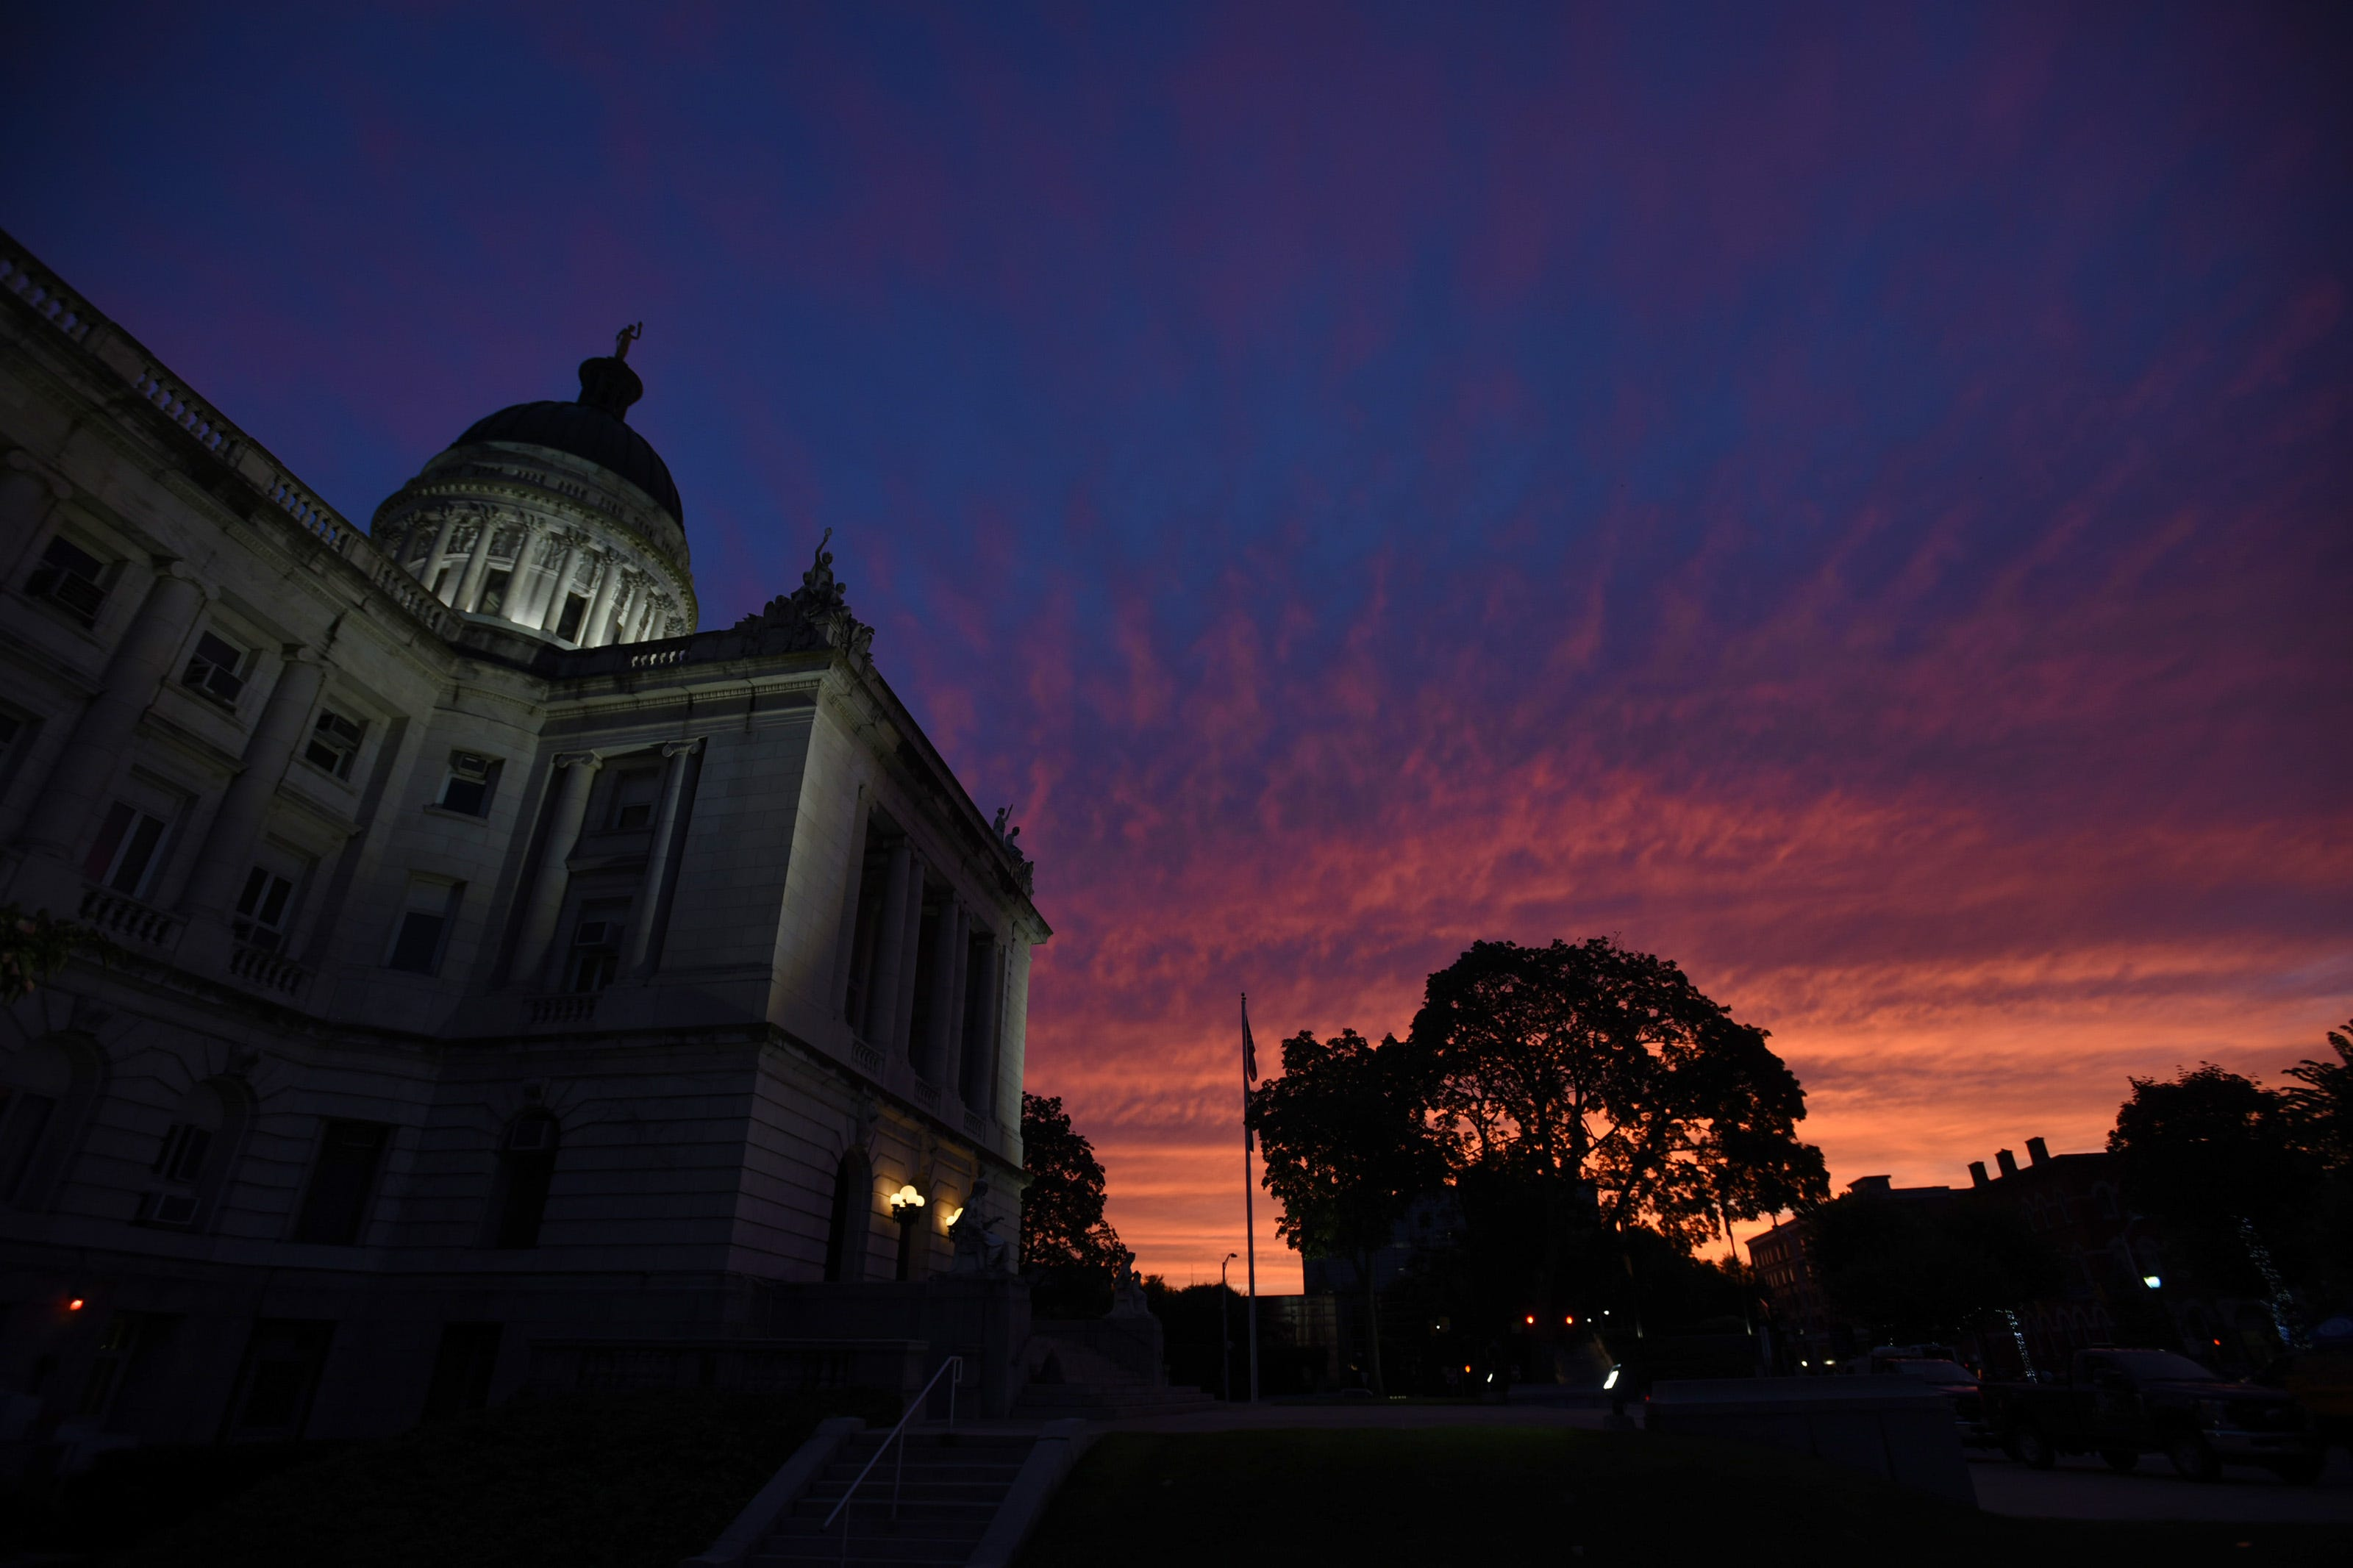 The dramatic evening sky is seen above the Bergen County Courthouse in Hackensack on 08/03/21.